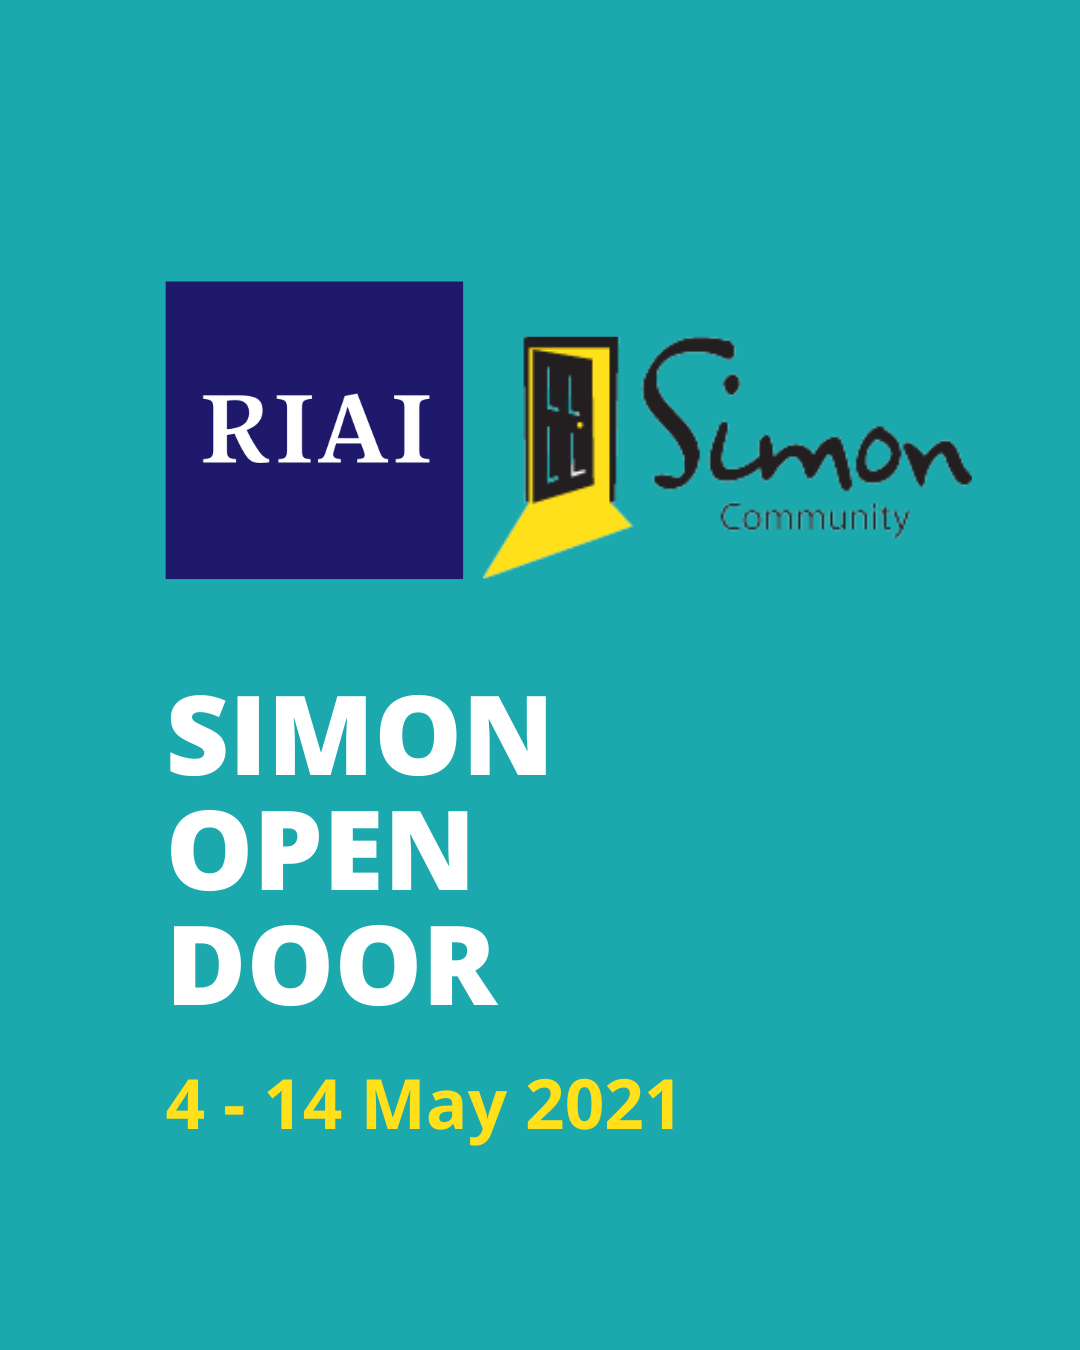 RIAI Simon Open Door 2021